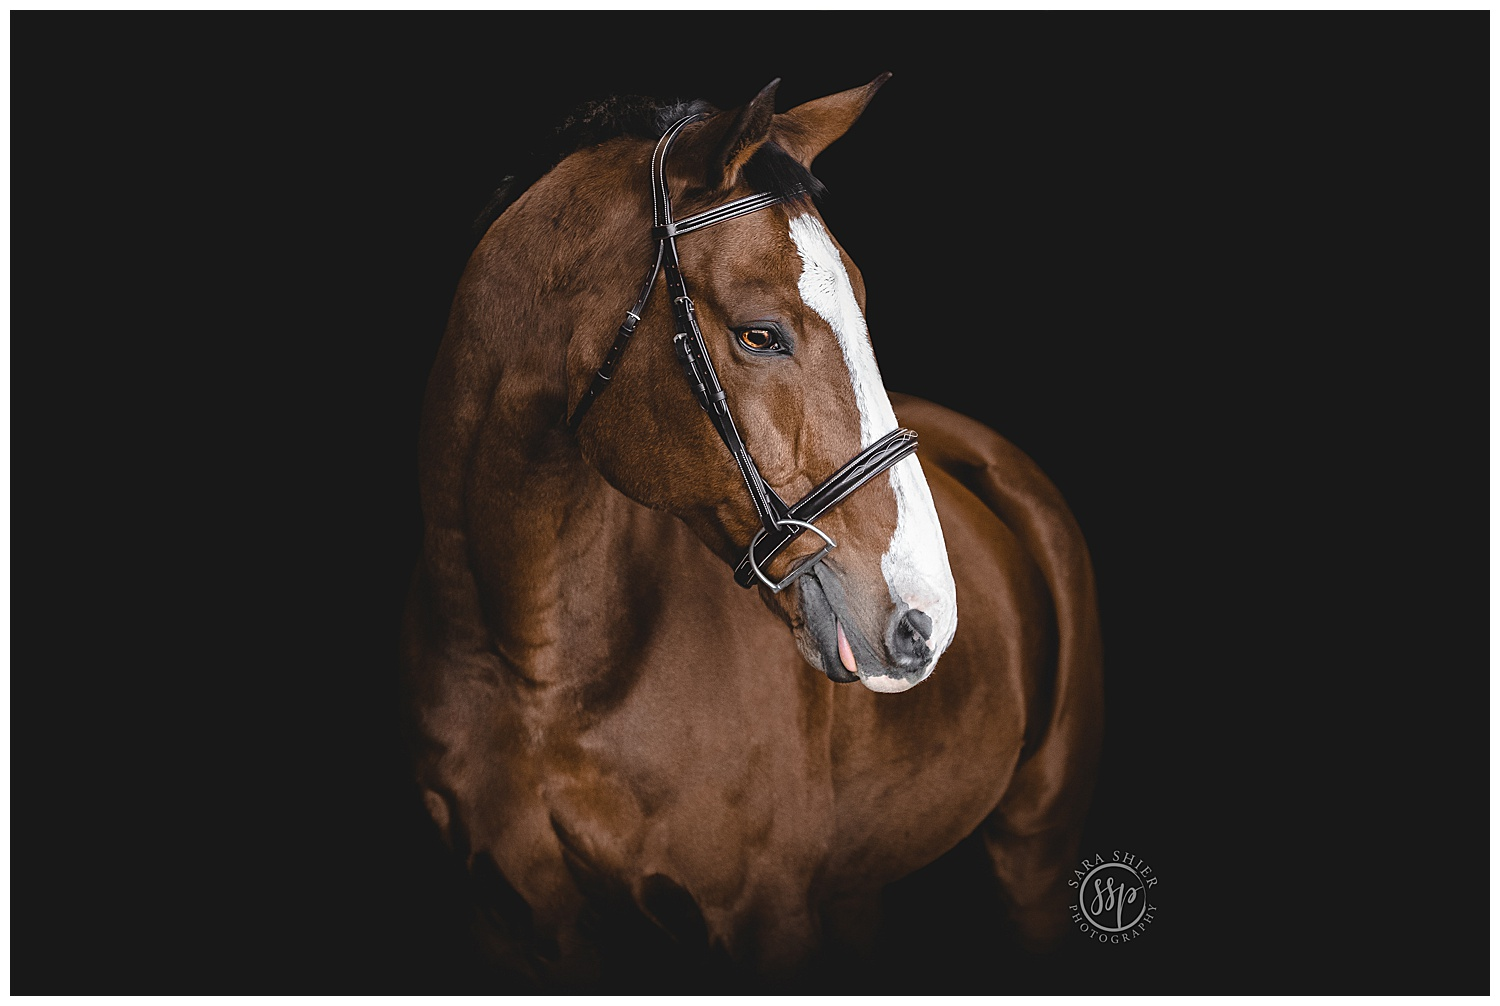 Black Background Horse Rider Equine Photographer Southern California Sara Shier Photography SoCal Equestrian Cowgirl_0214.jpg